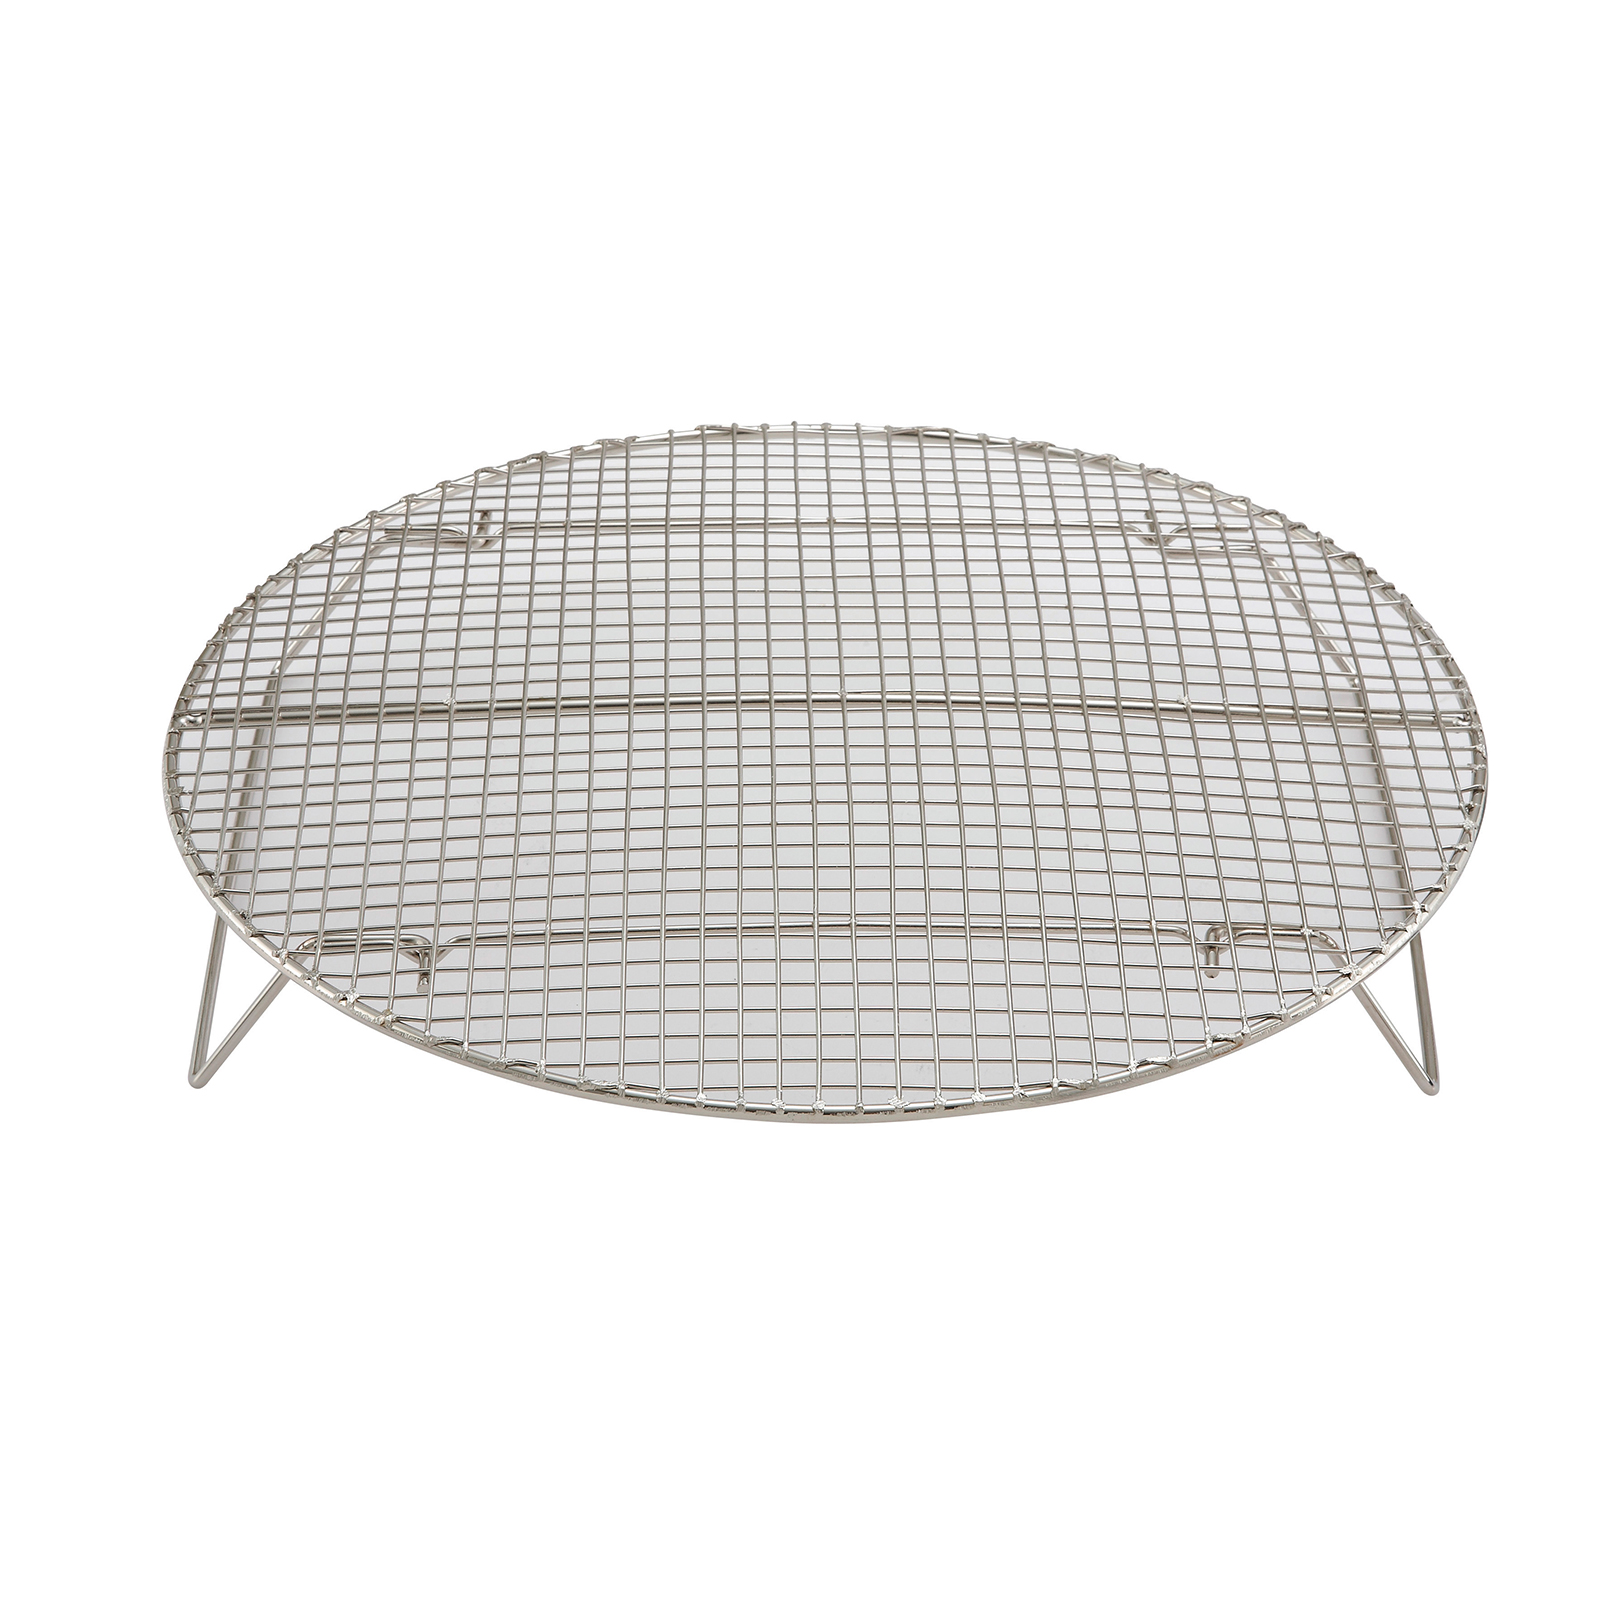 Winco STR-15 wire pan rack / grate